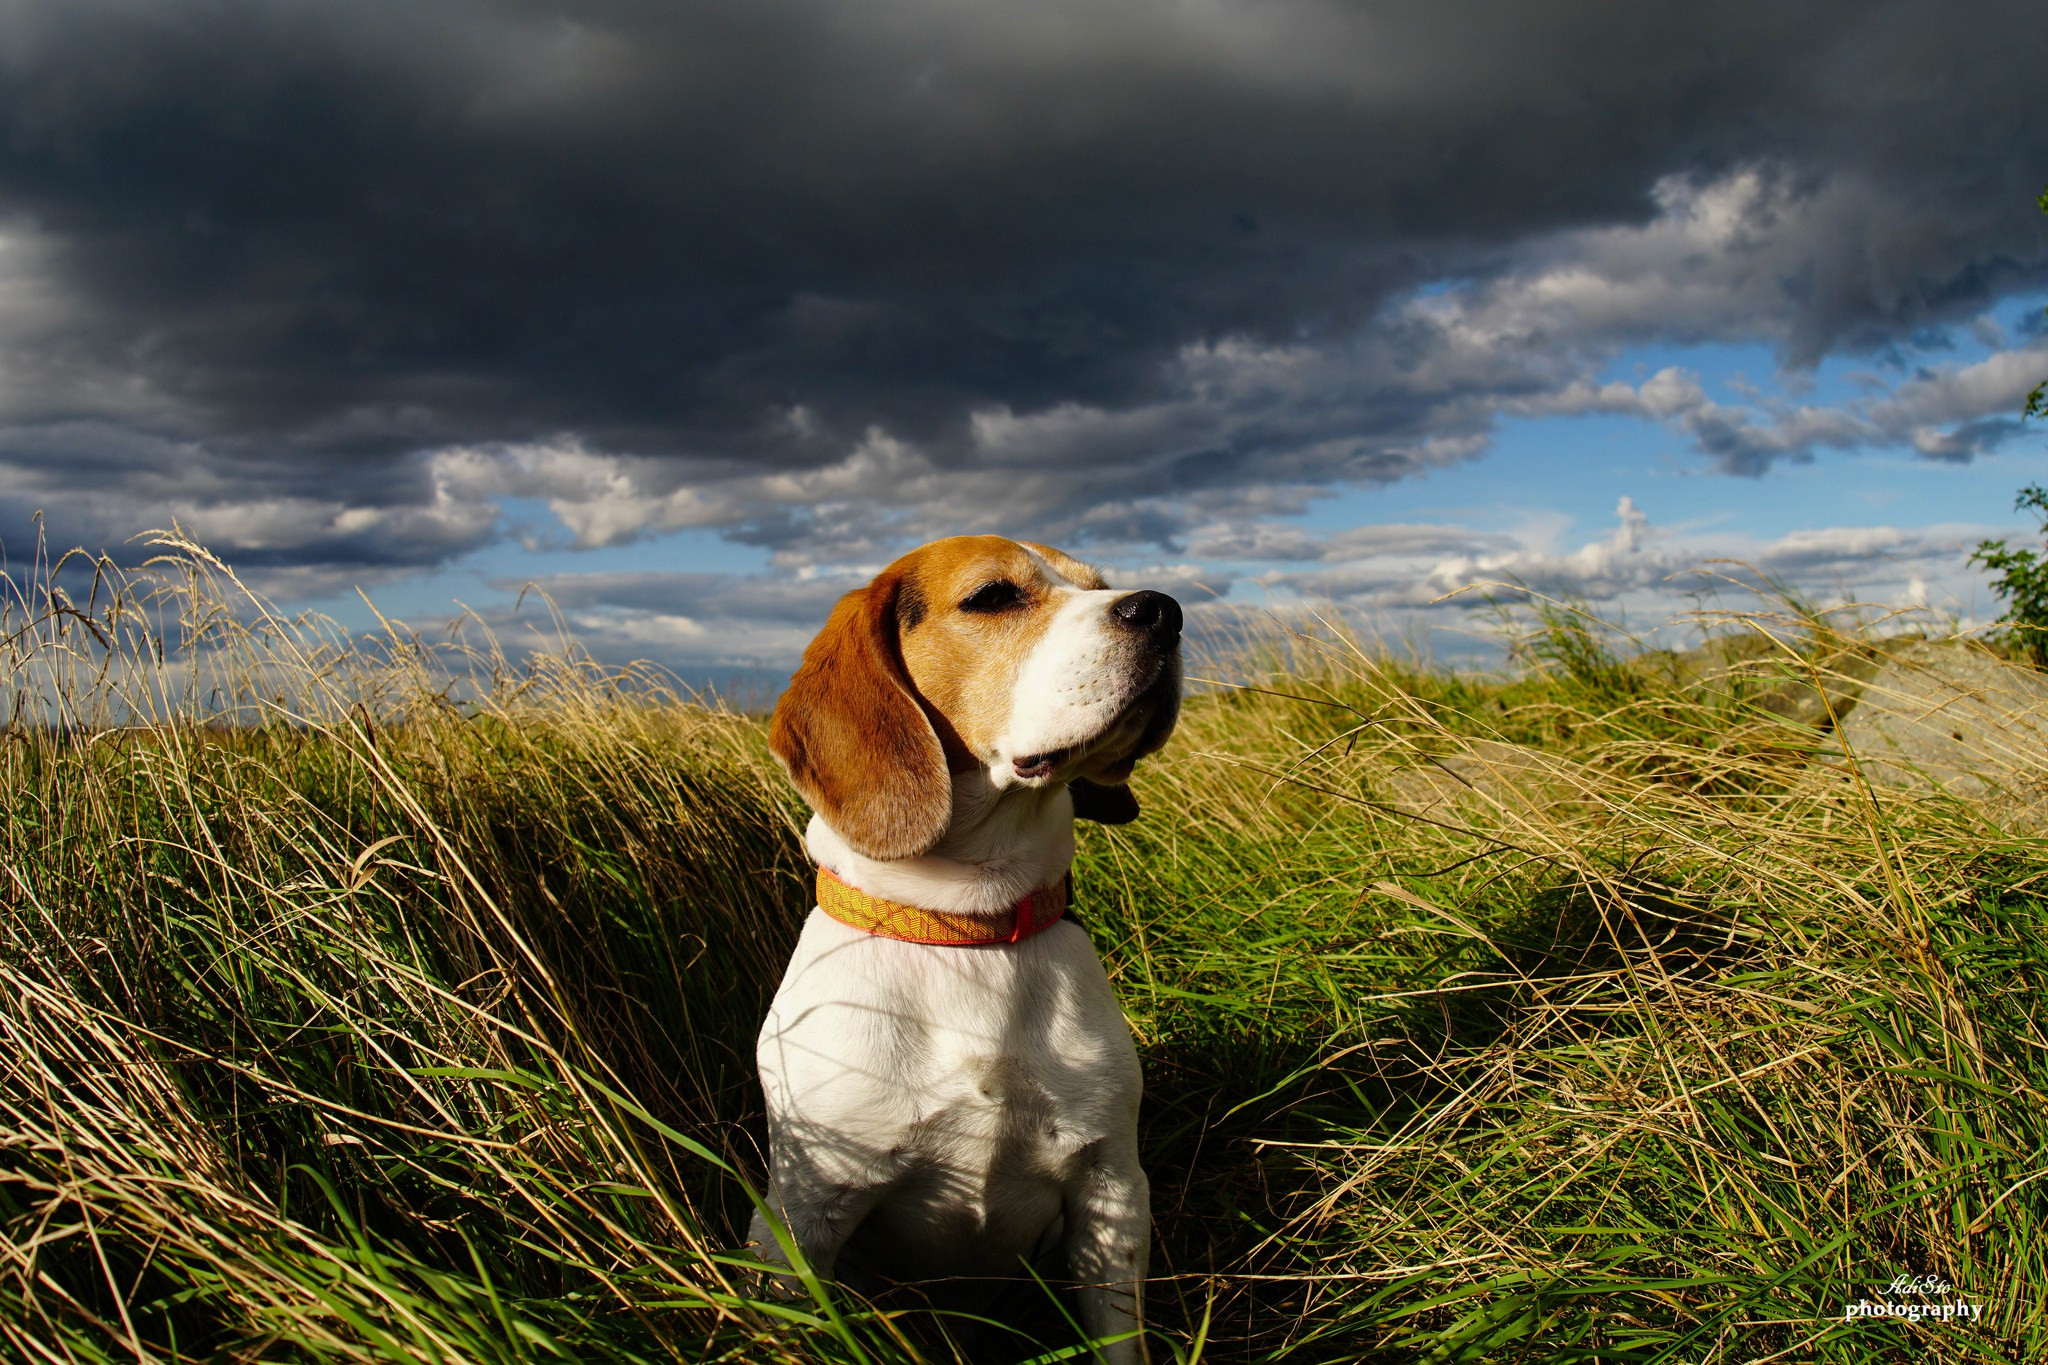 Chester in the field